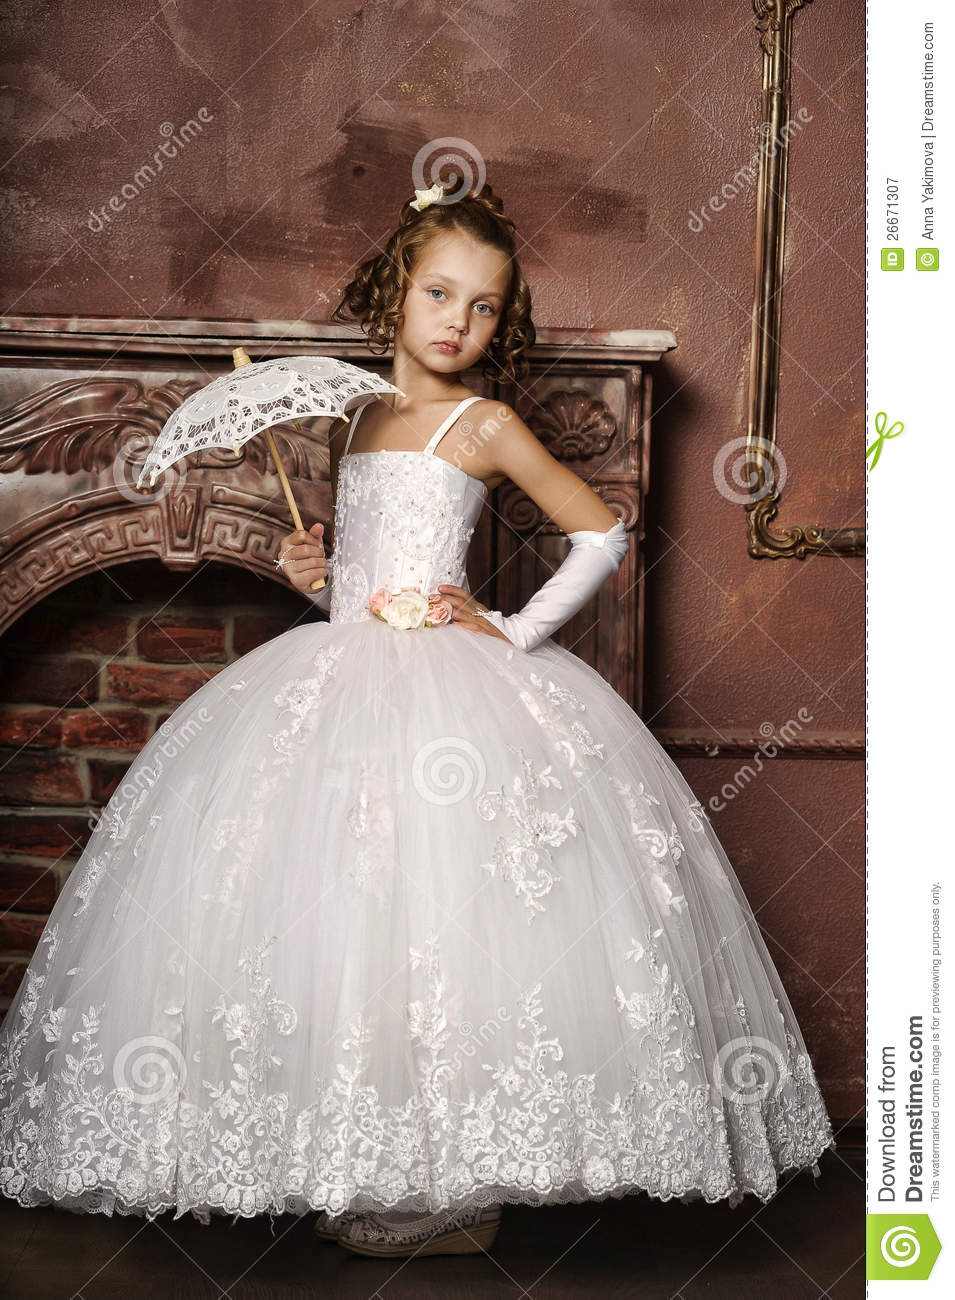 Little girl in wedding dress stock image image of girl for Dresses for girls wedding